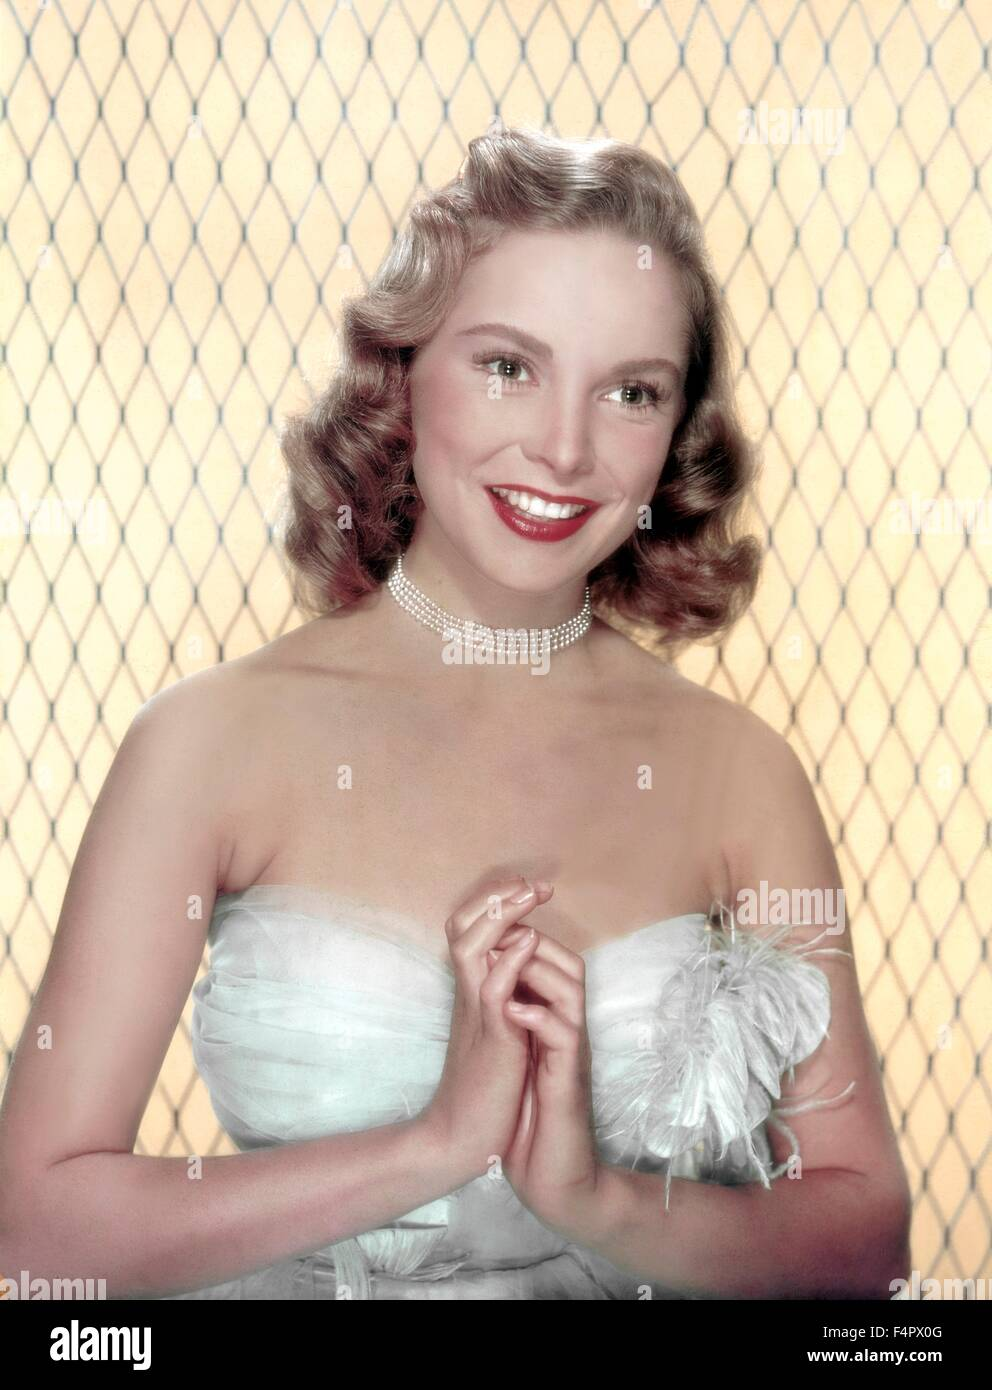 Janet Leigh in the 40's - Stock Image